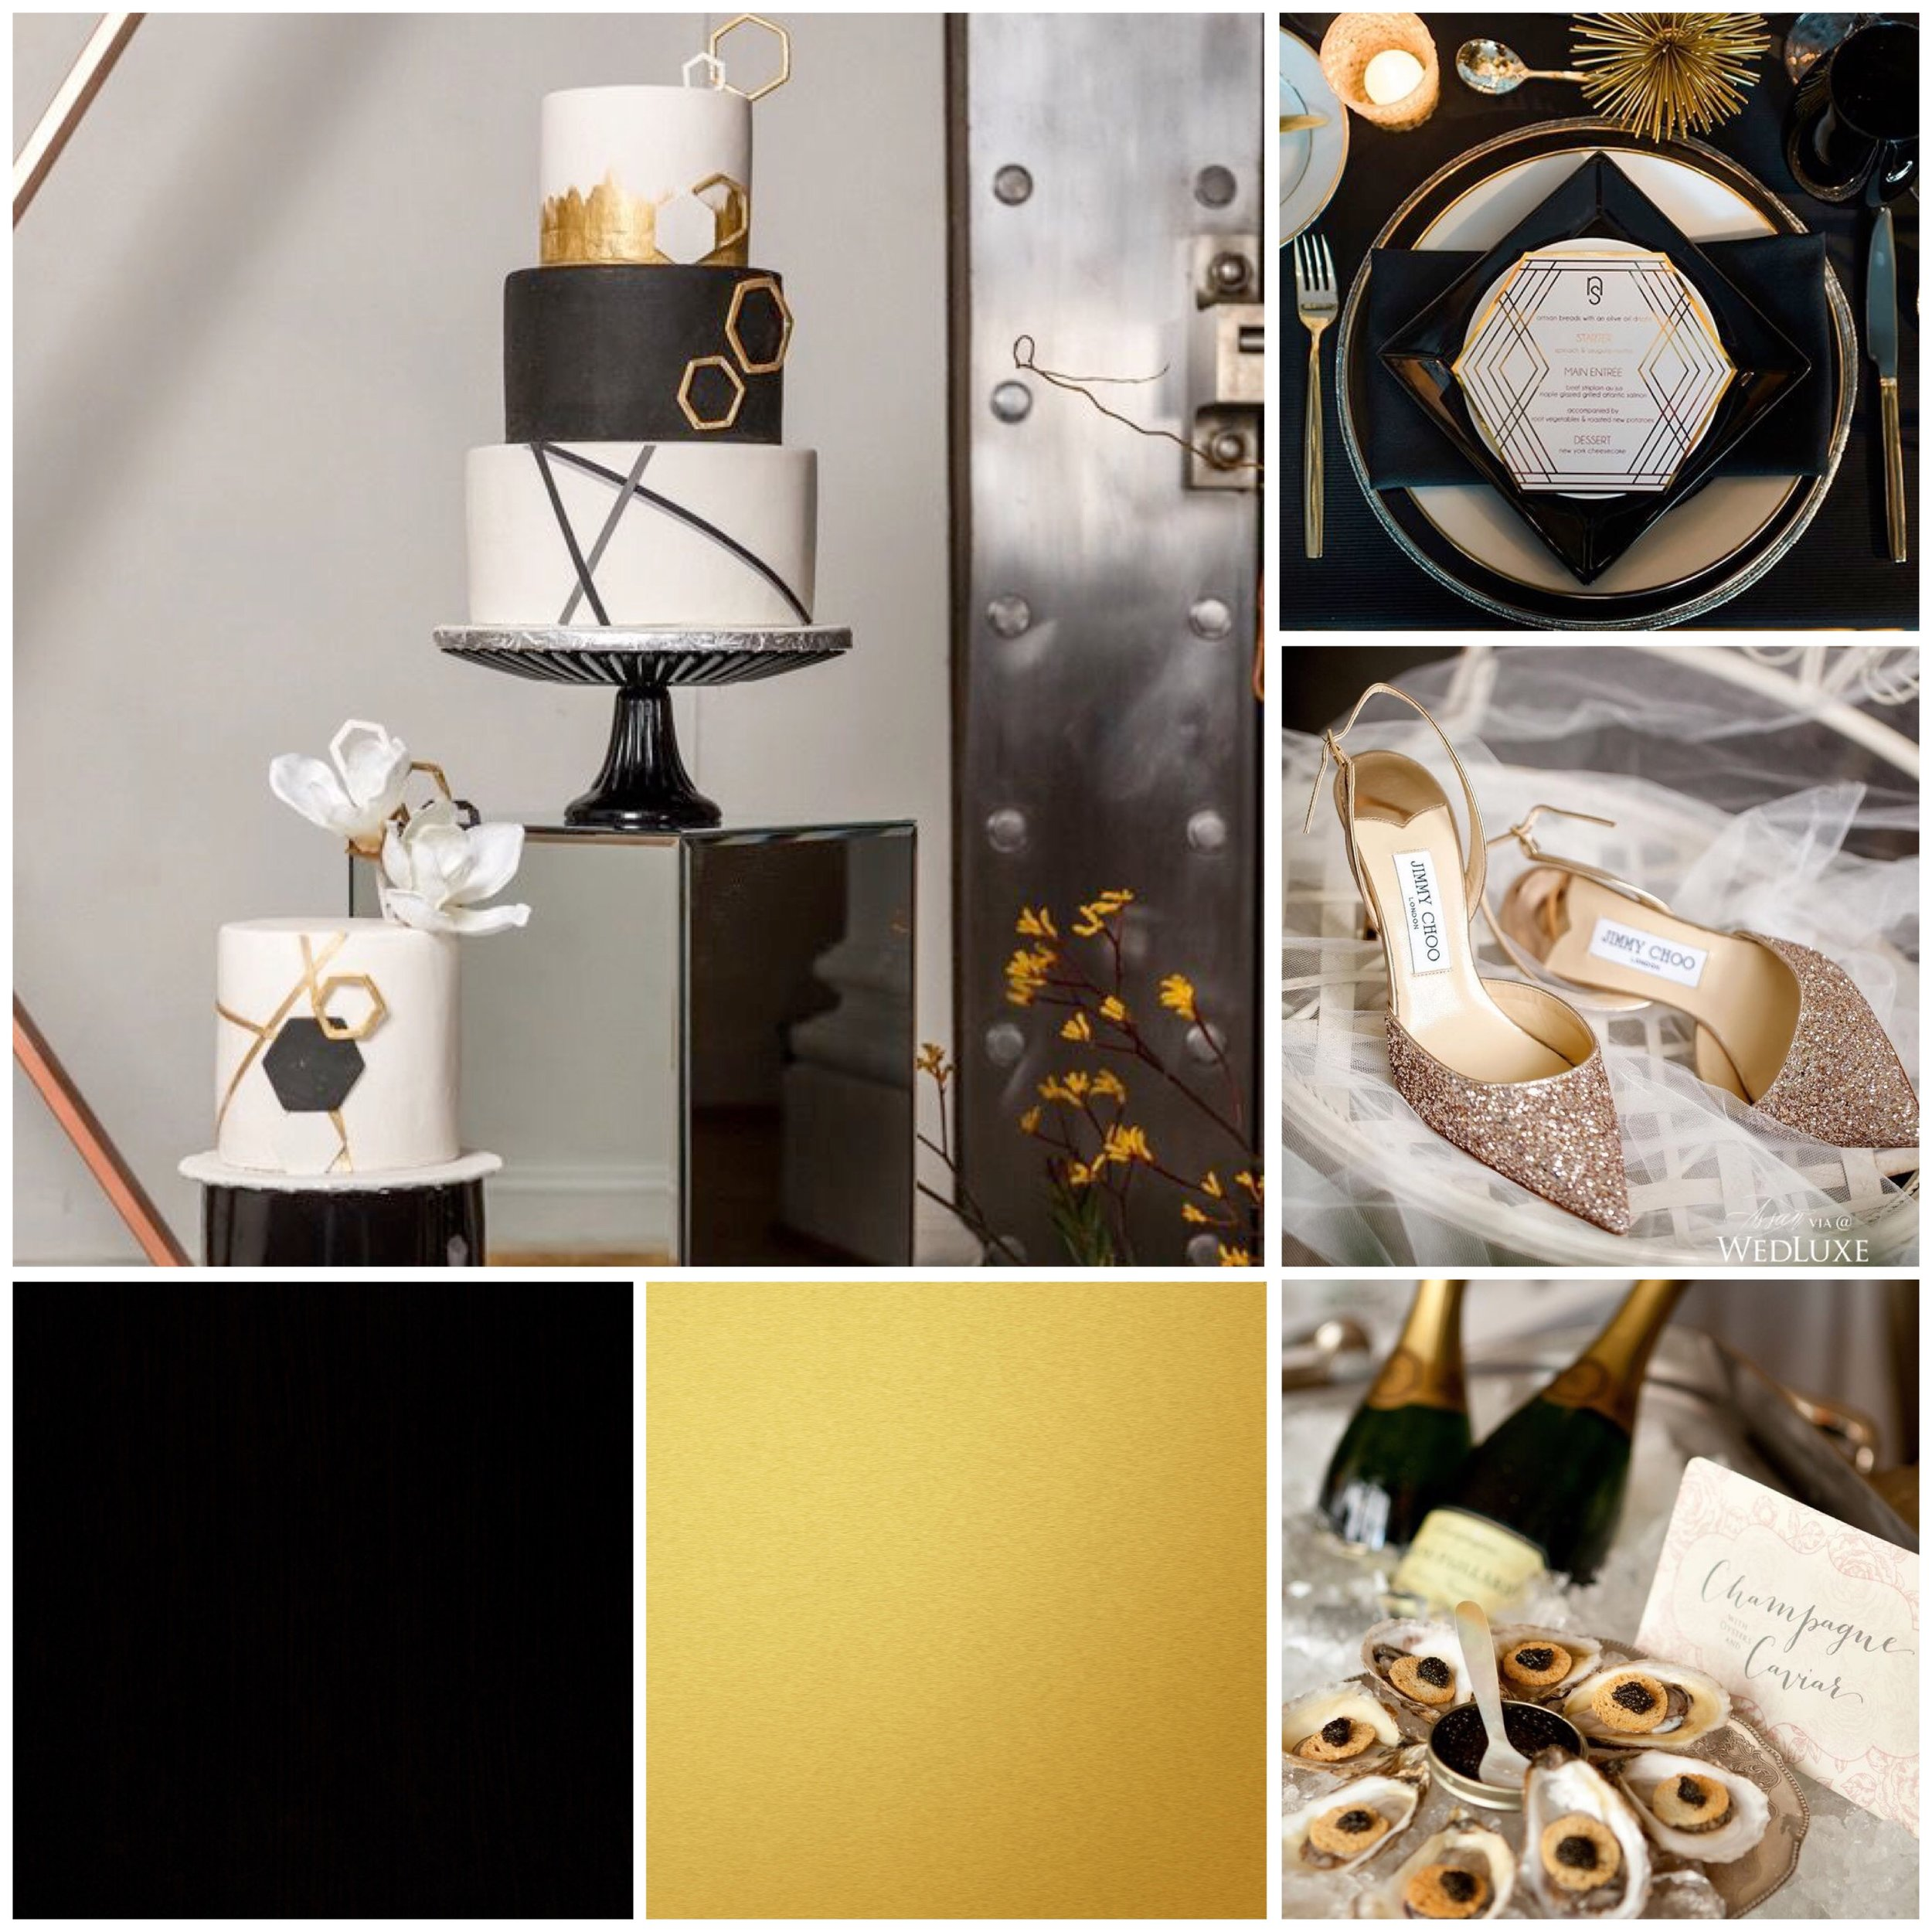 Black & Gold mood board designed by Luxe by Minihaha & co.